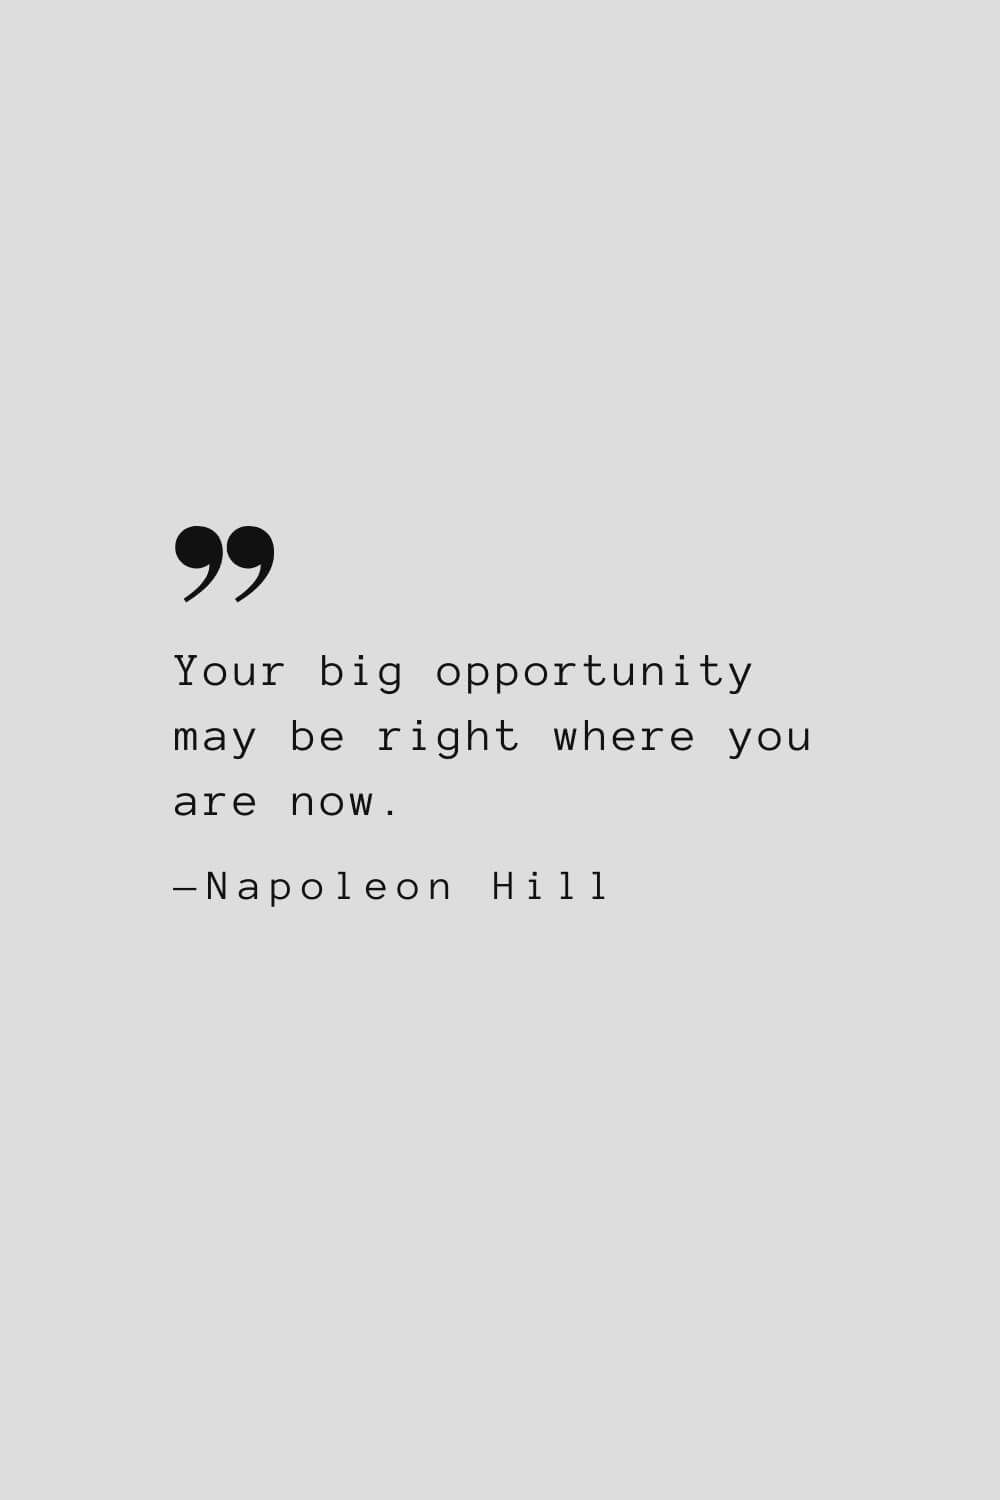 73 Best Napoleon Hill Quotes to Inspire Success in Life and Business